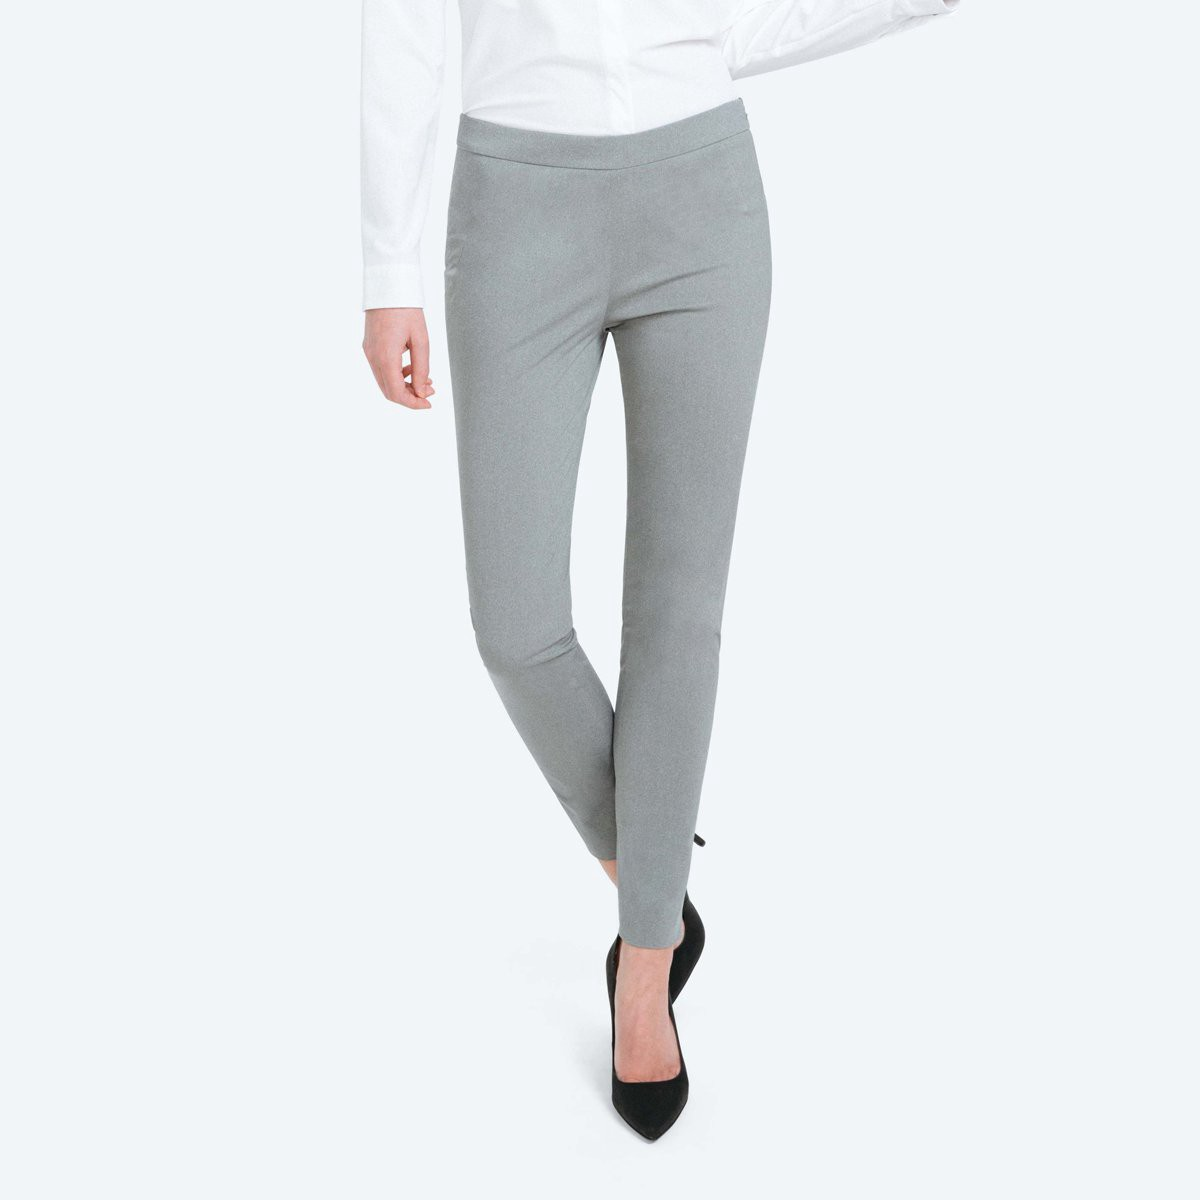 fccea21ef7162c Ministry Of Supply Women's Skinny Kinetic Pants - Grey Heather 12 Gray